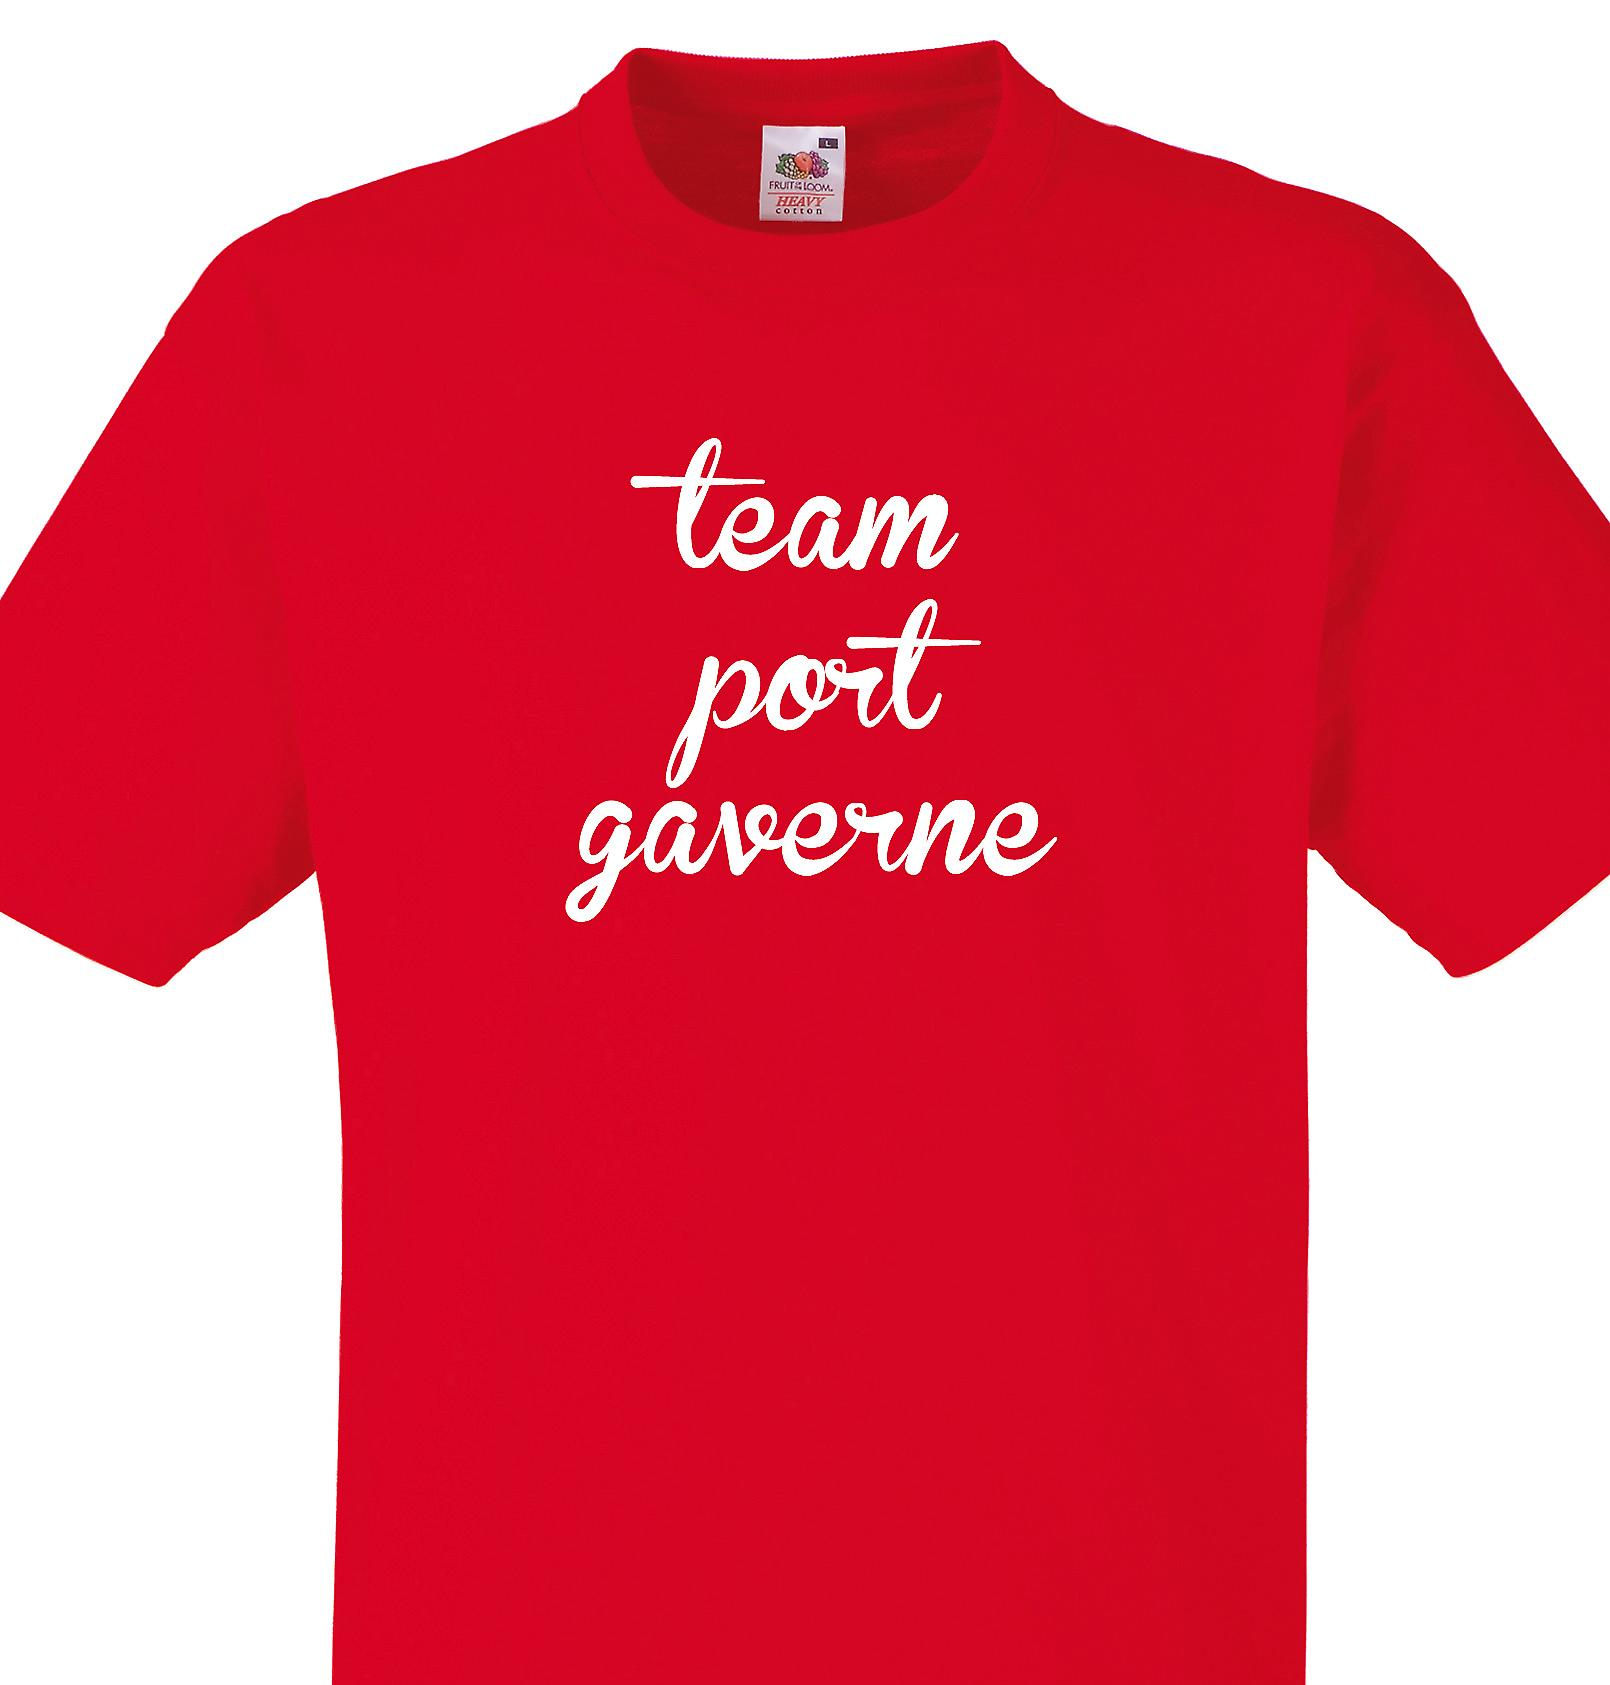 Team Port gaverne Red T shirt